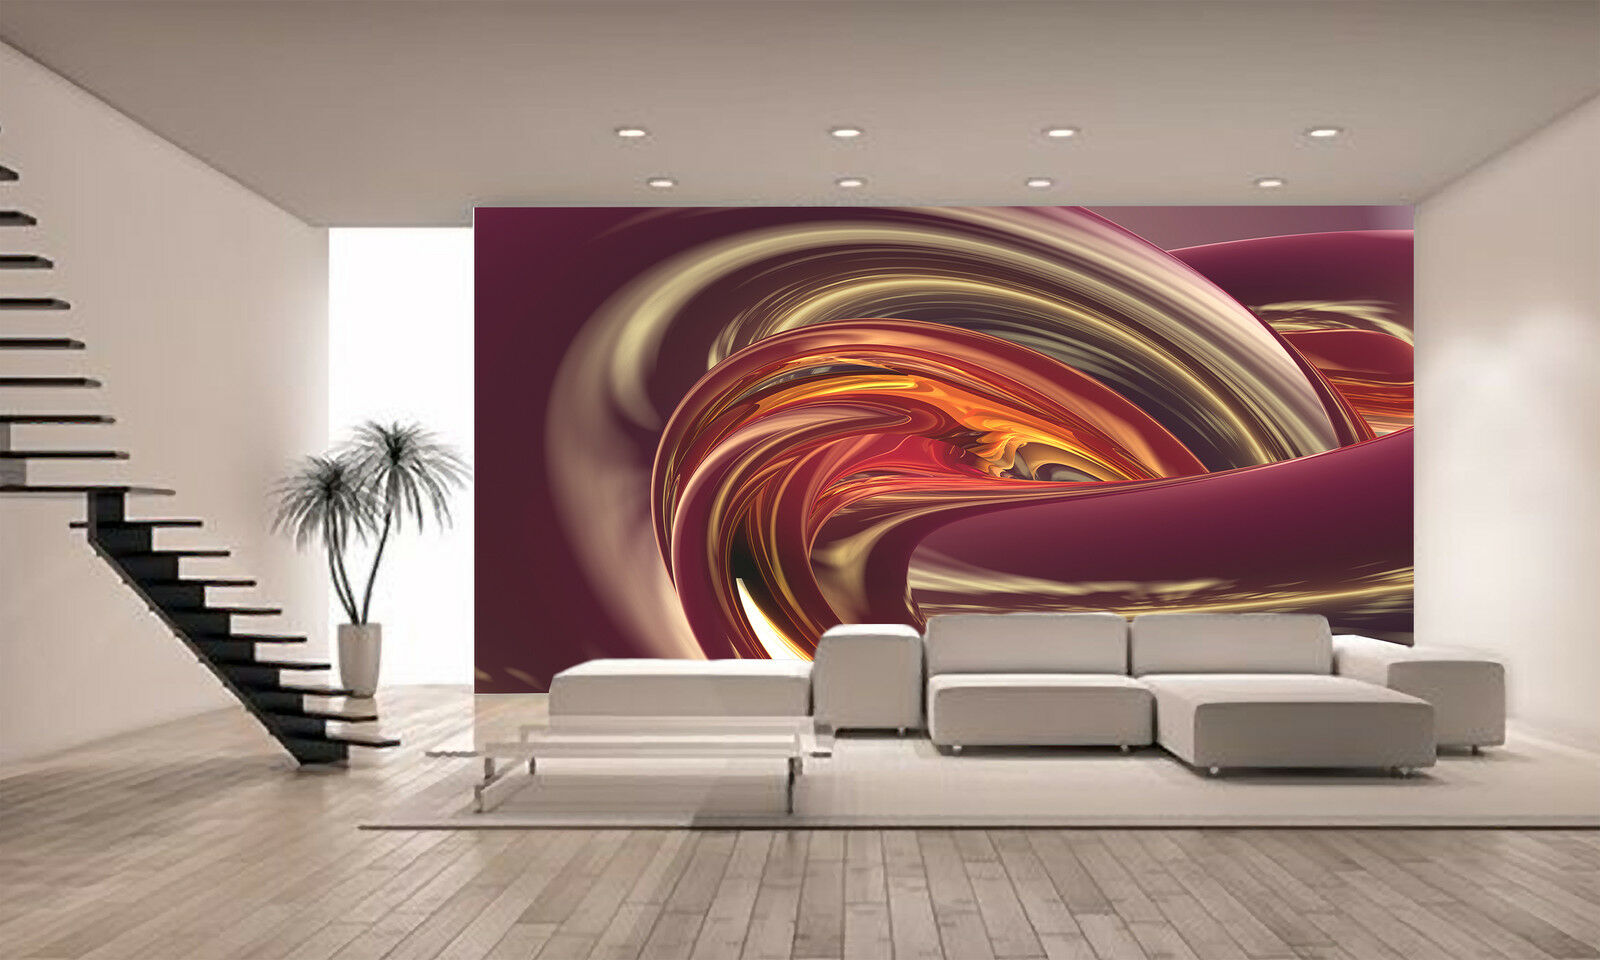 3d abstract background wall mural photo wallpaper giant wall decor 3d abstract background wall mural photo wallpaper giant wall decor paper poster